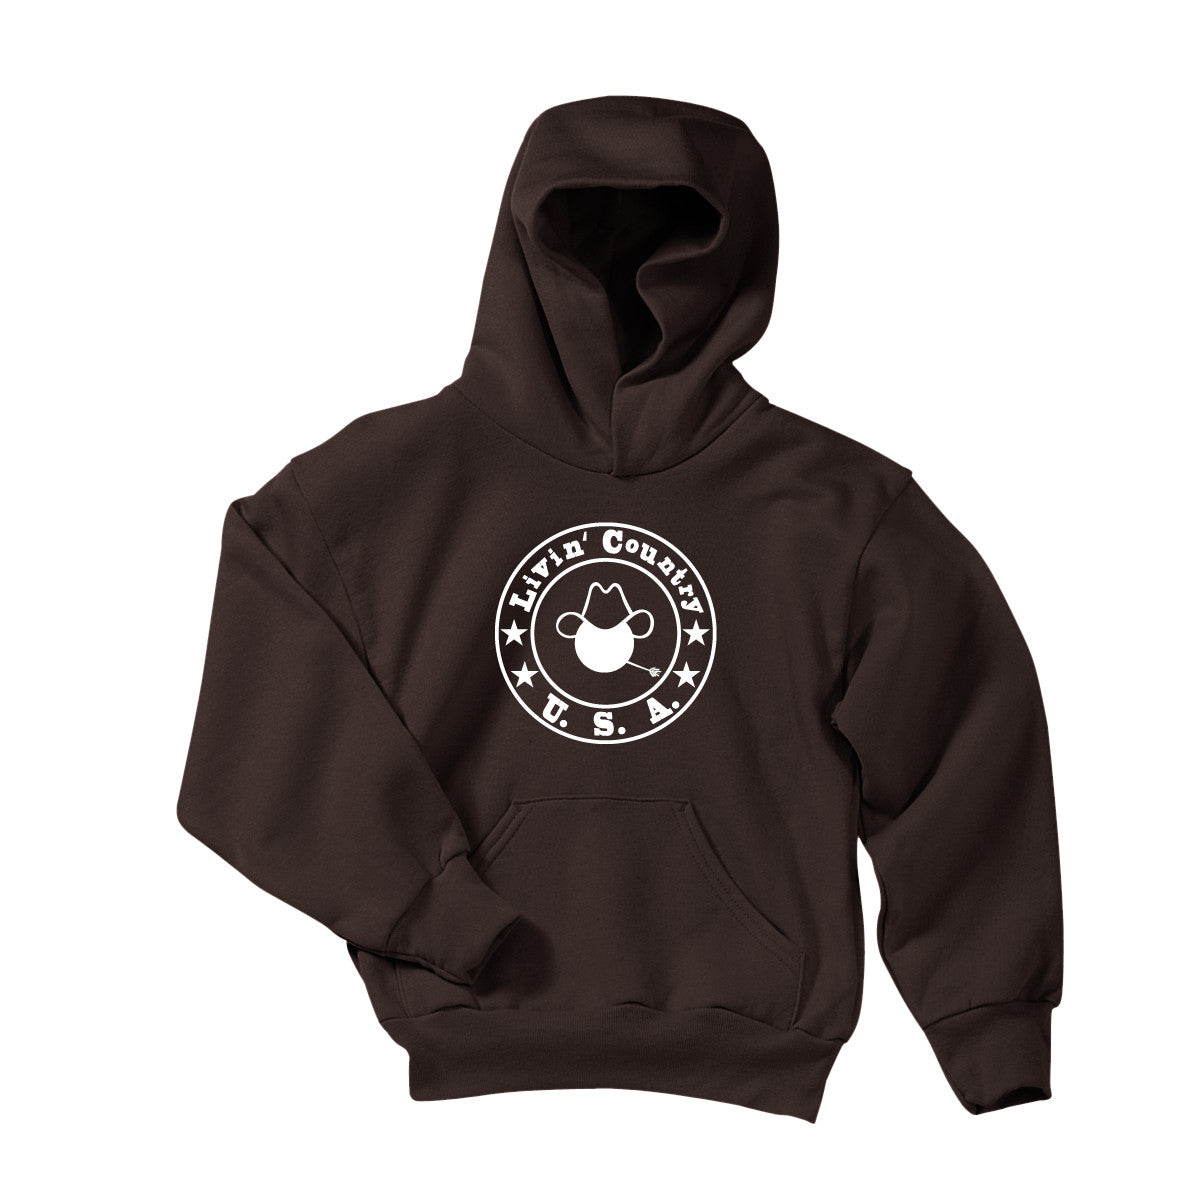 Youth Livin' Country Logo Hoodie - Livin' Country Apparel & Accessories  - 1